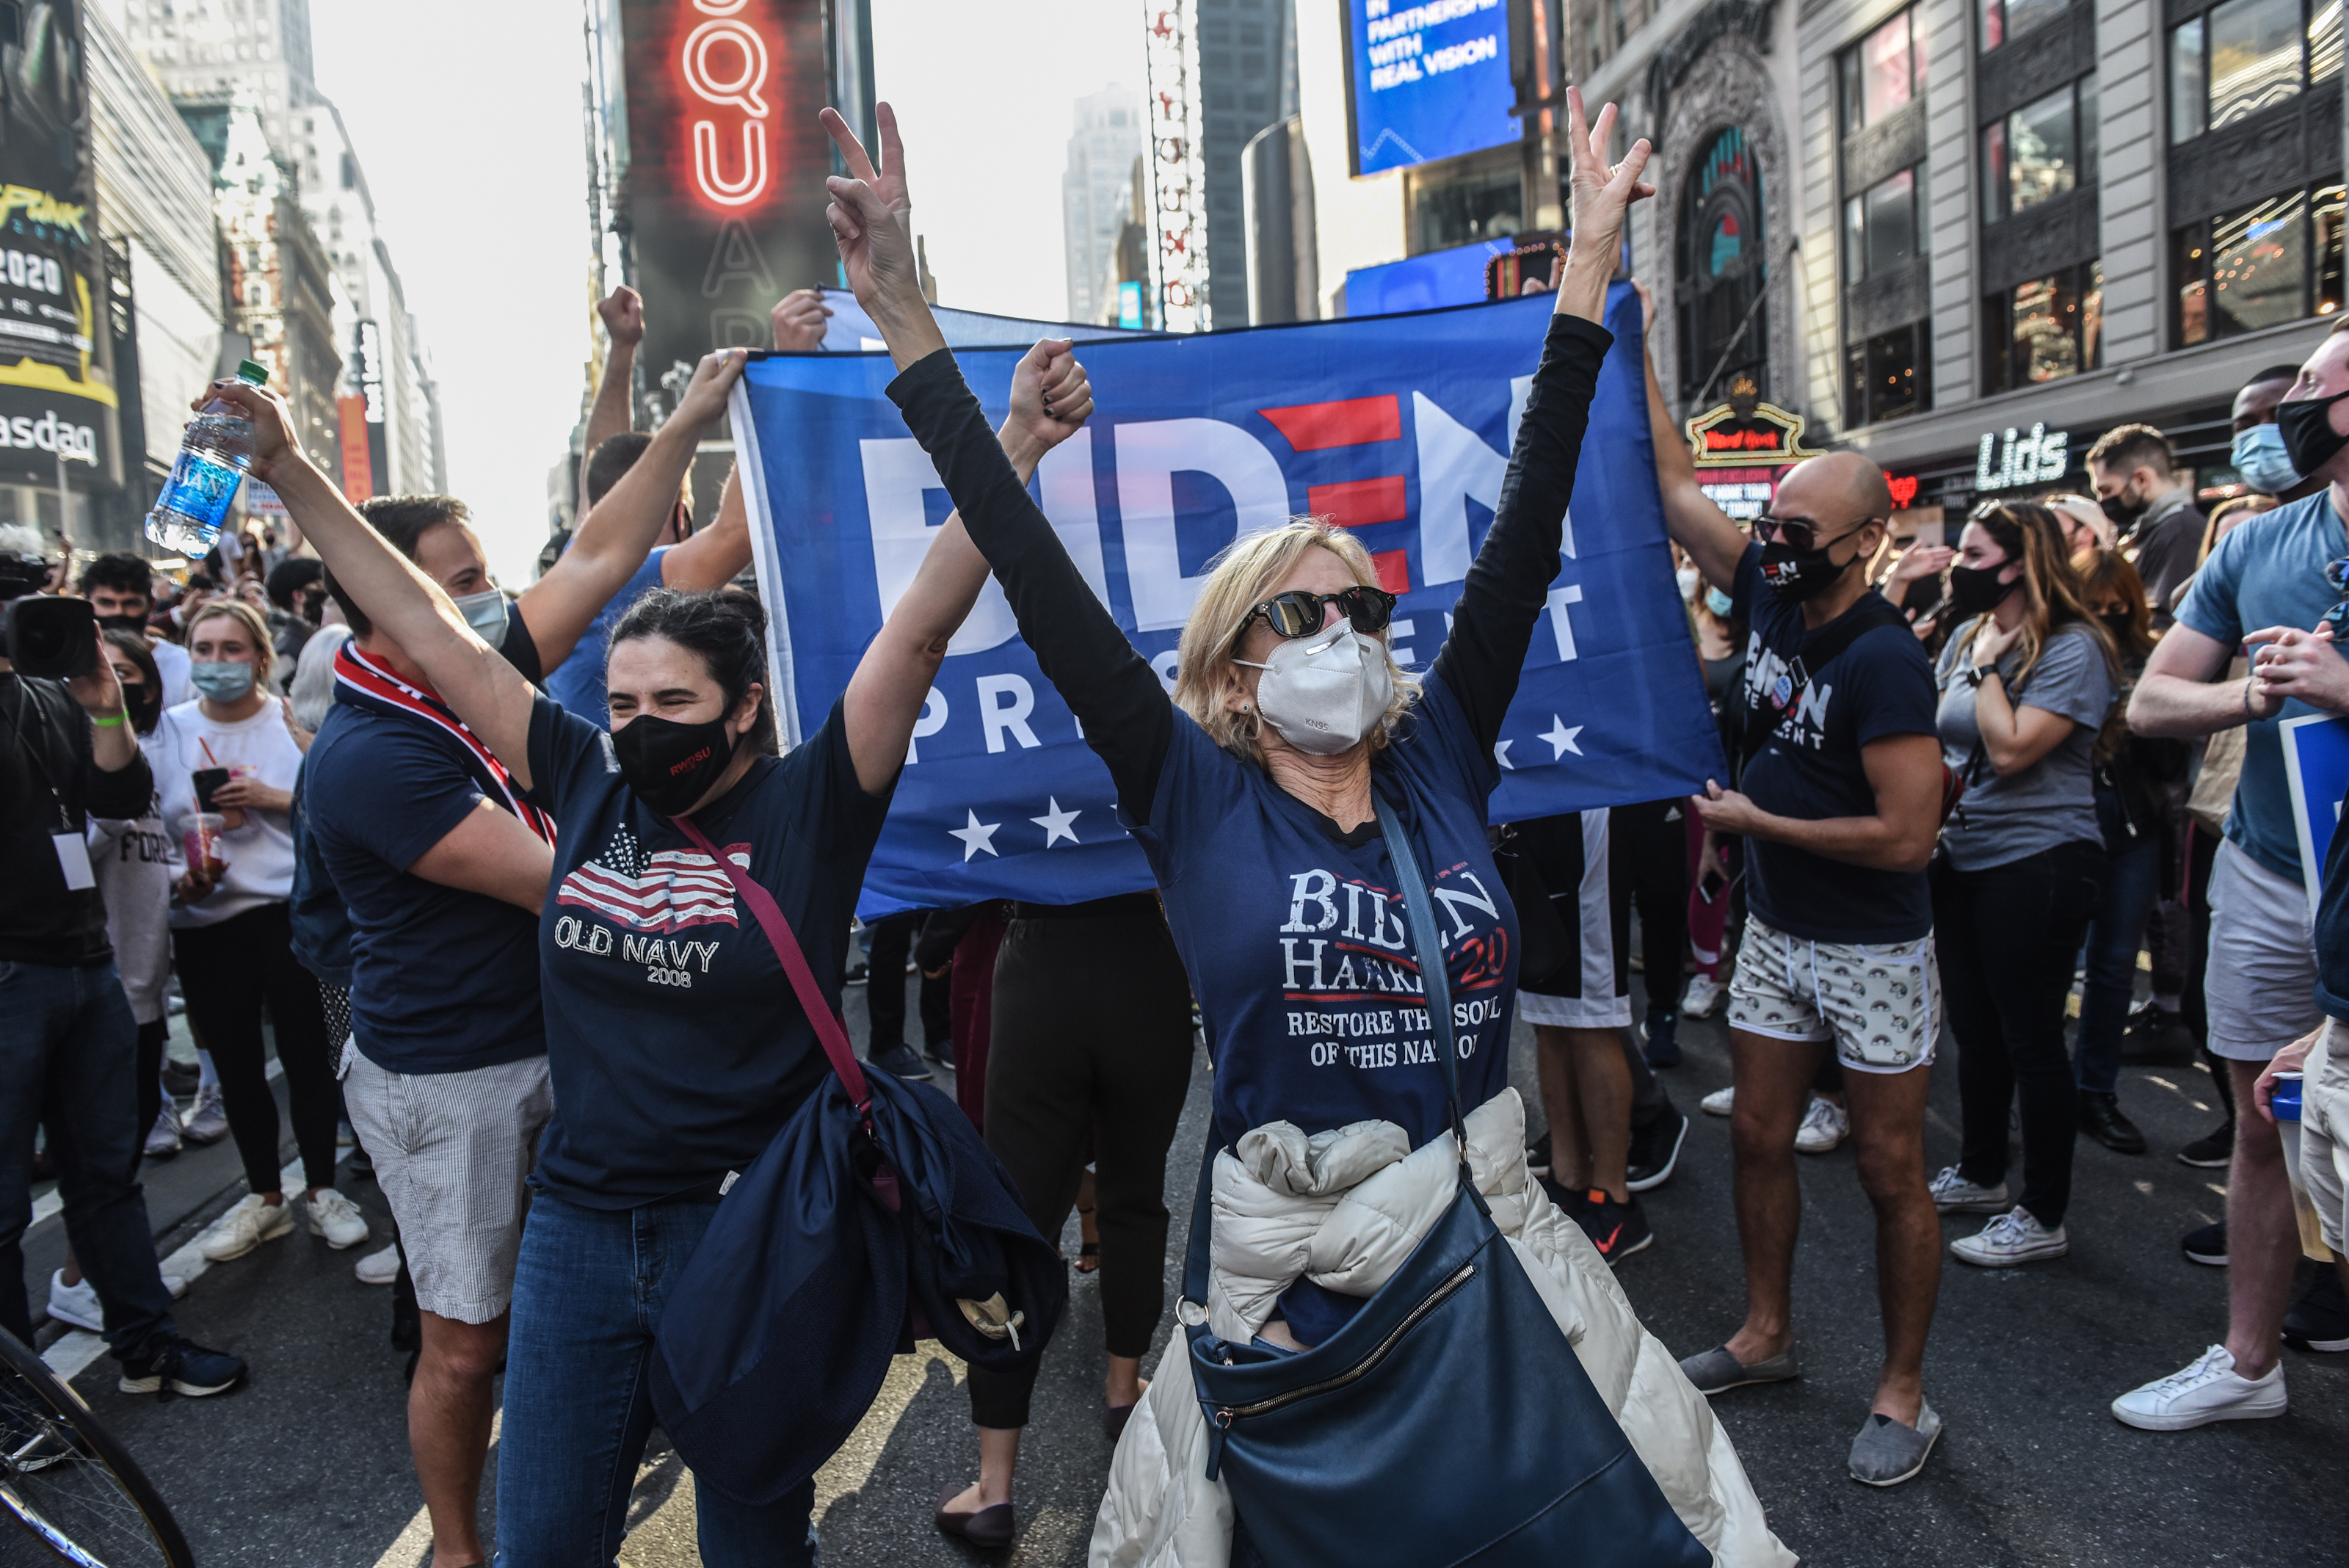 Supporters Of Joe Biden Celebrate Across The Country, After Major Networks Project Him Winning The Presidency